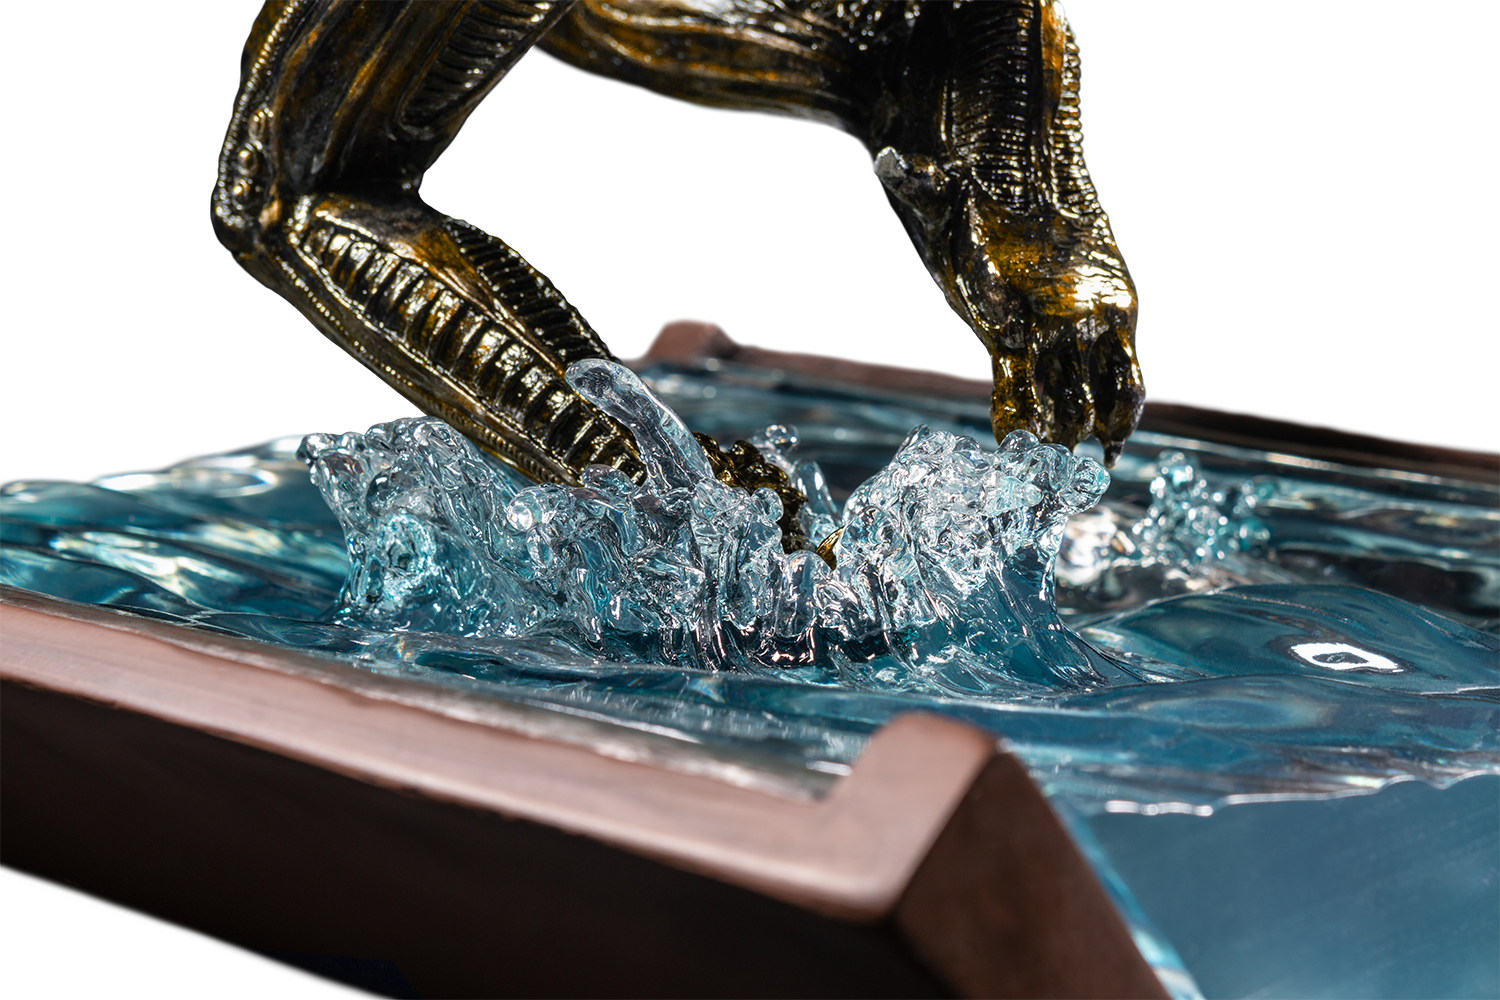 IKO1605-Alien-in-Water-Statue-New-Paint-16-217.png